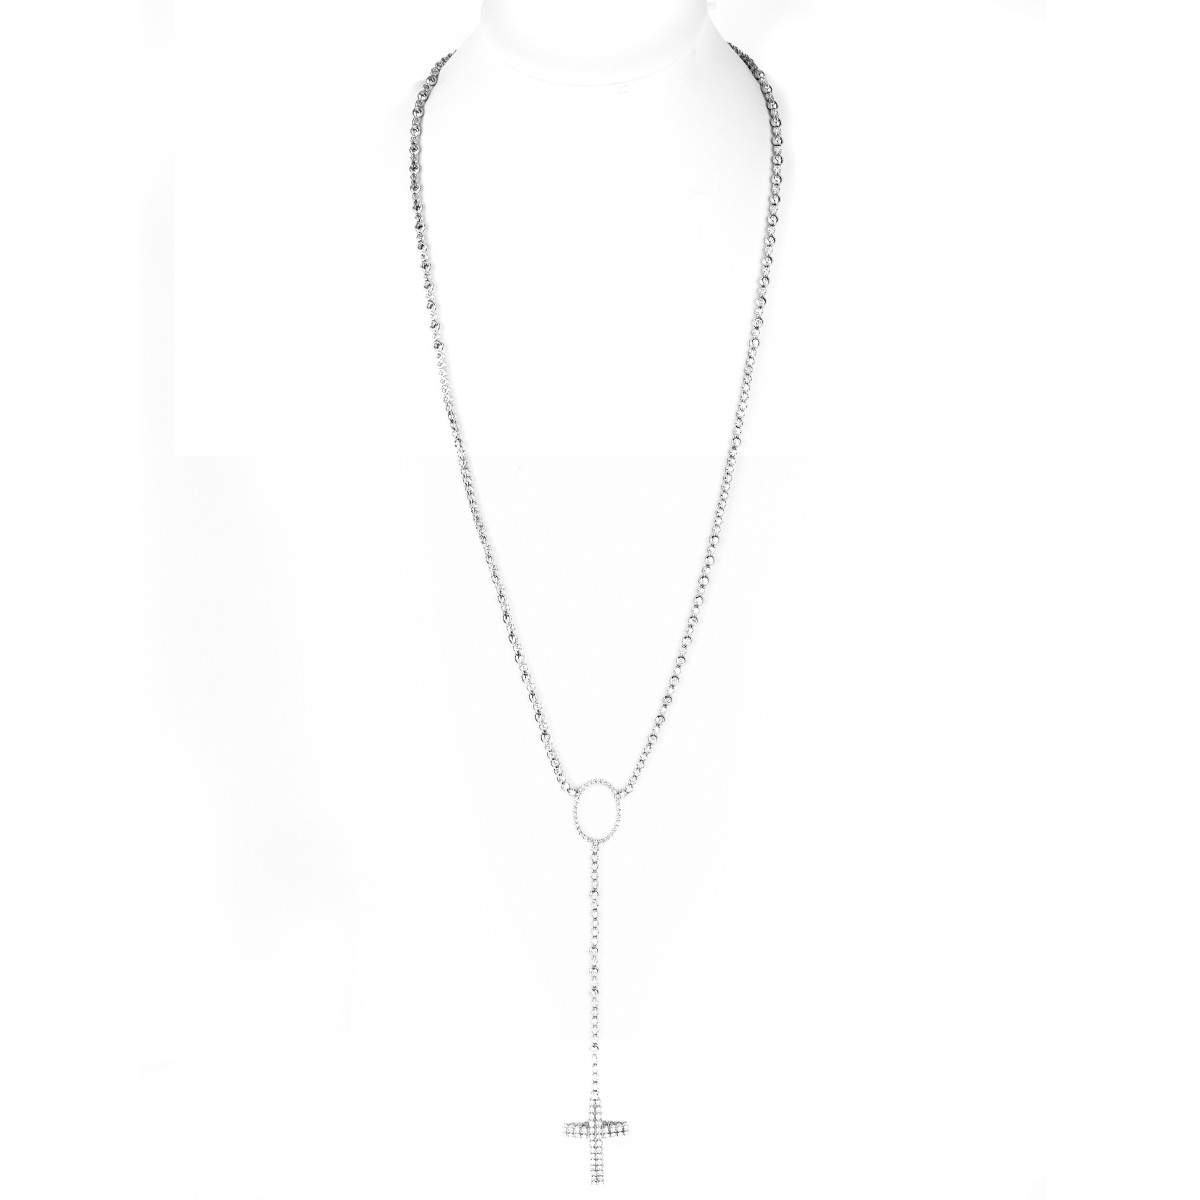 12.75ct Diamond and 18K Gold Cross Necklace